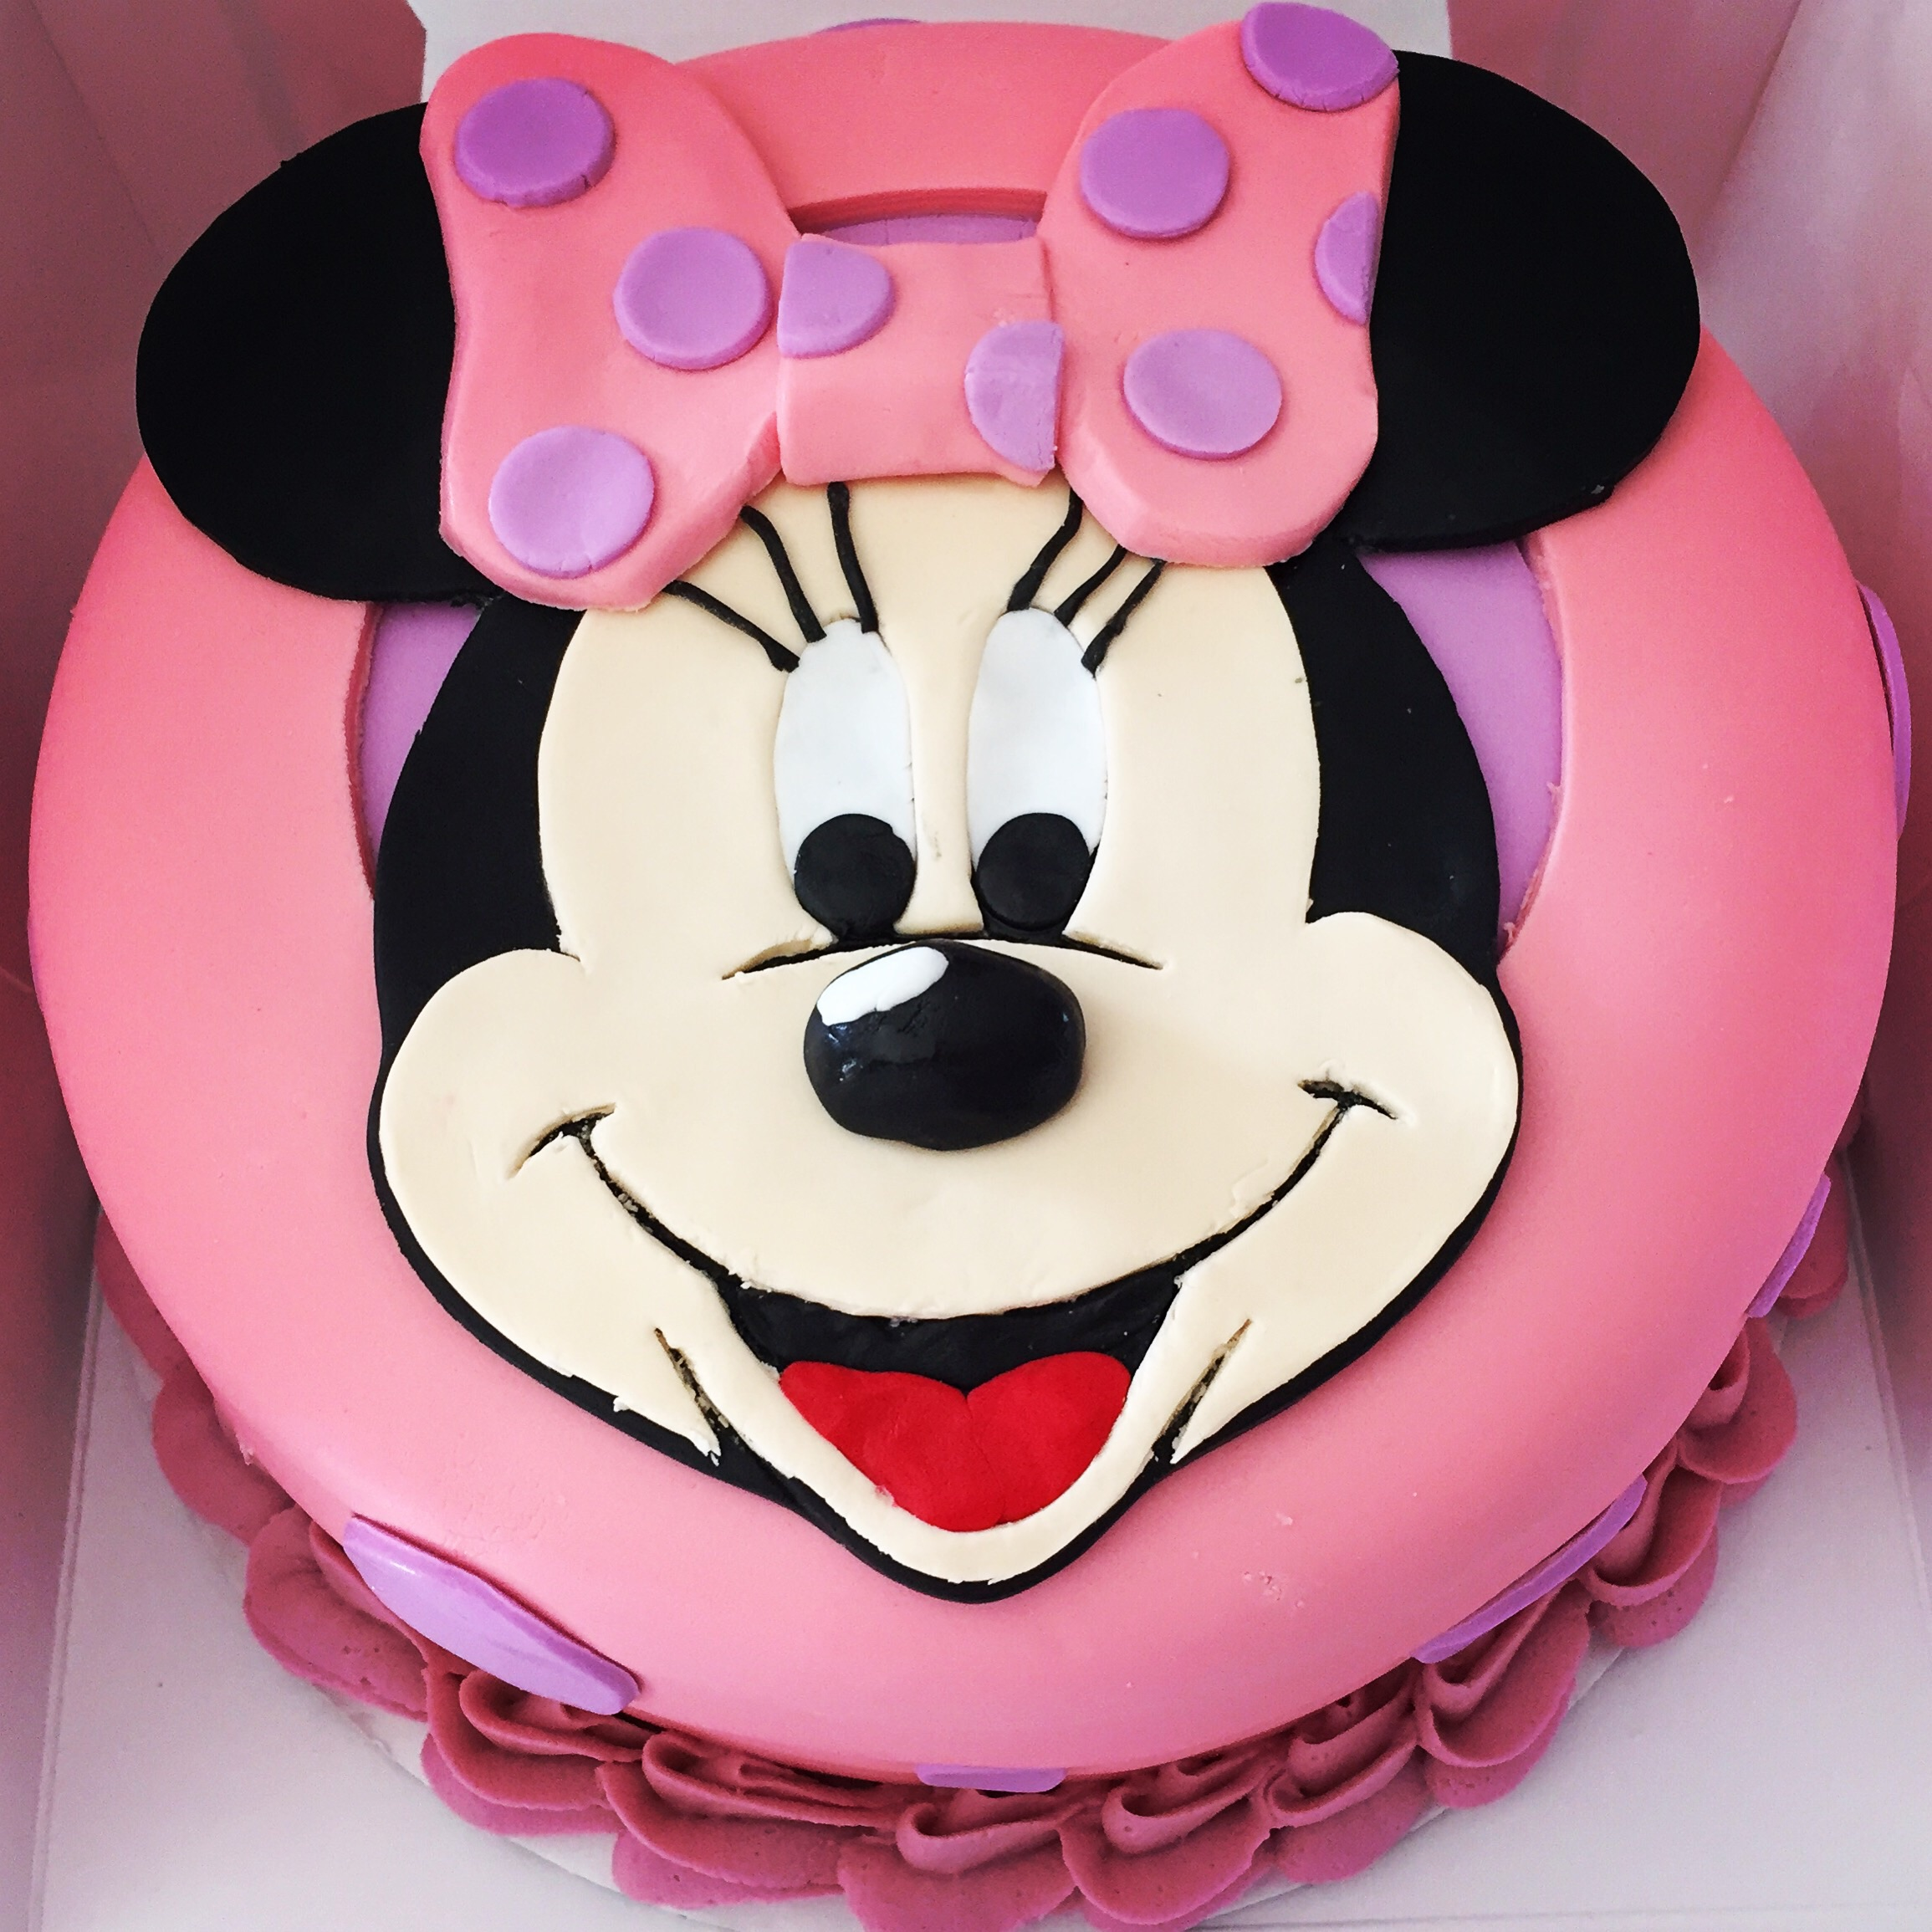 Minnie Mouse Cakes! – The Cupcake Delivers